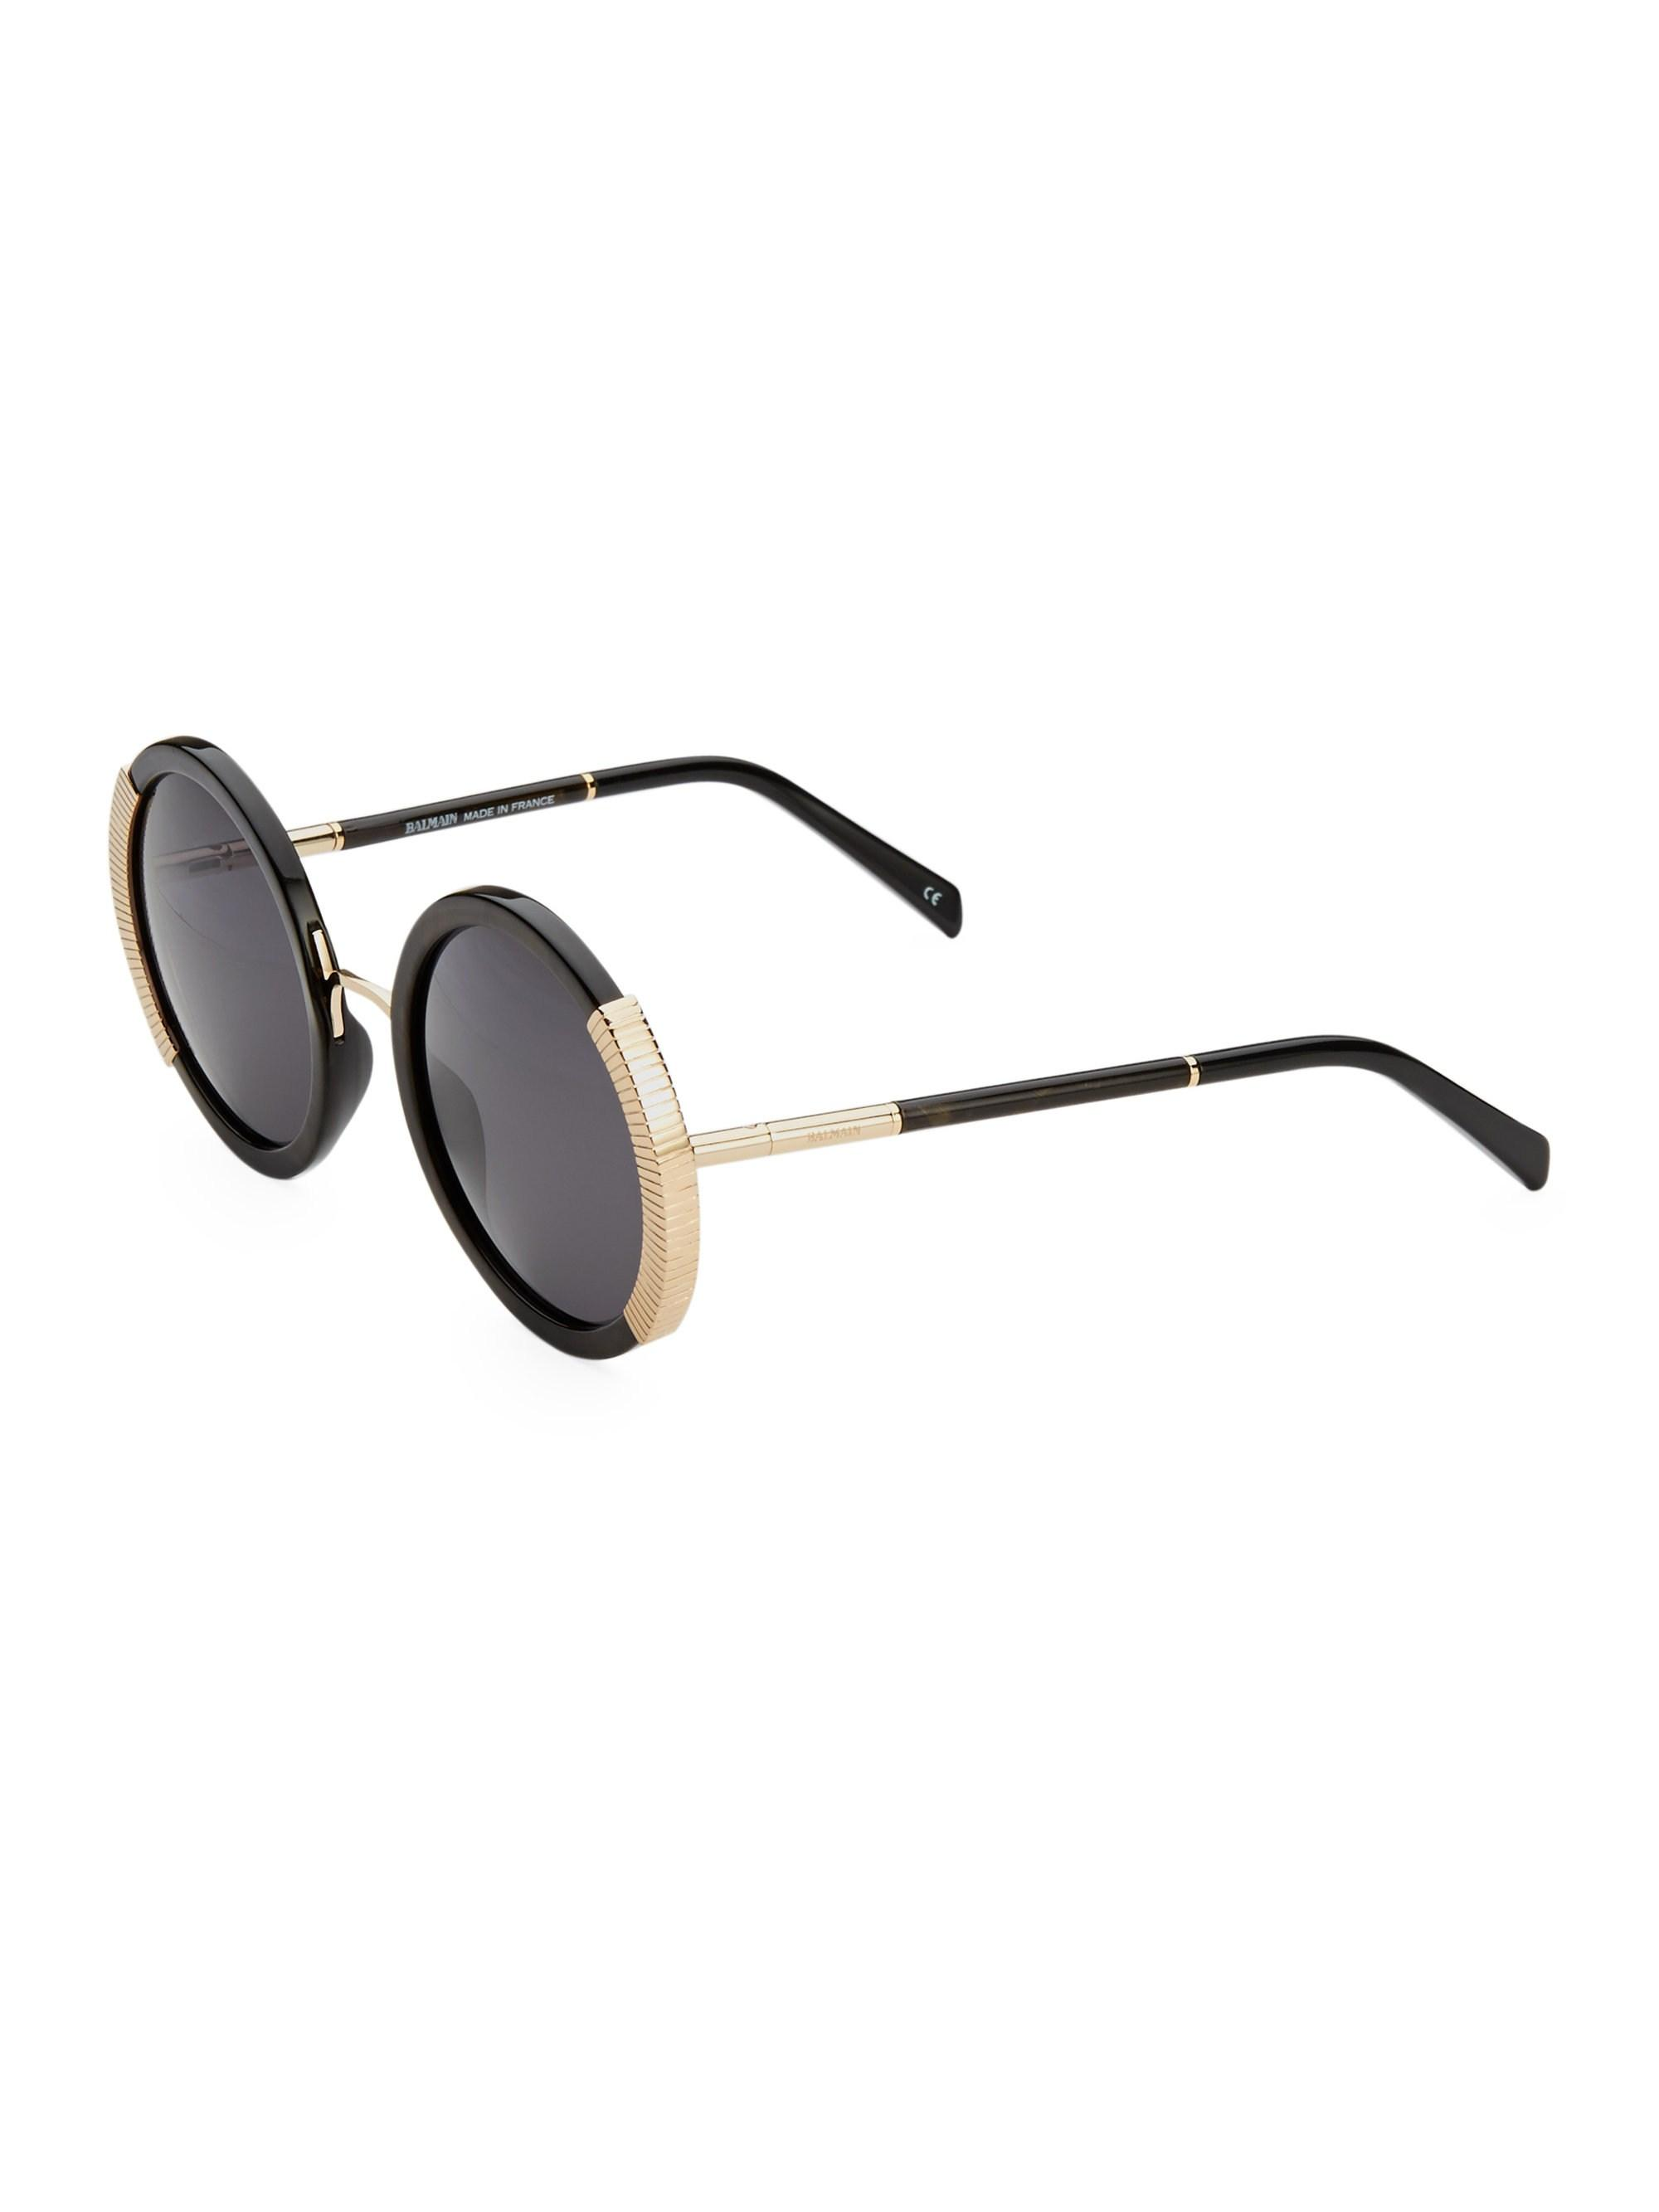 d565e15960 Balmain - Multicolor Round Sunglasses With Gold Detail - Lyst. View  fullscreen